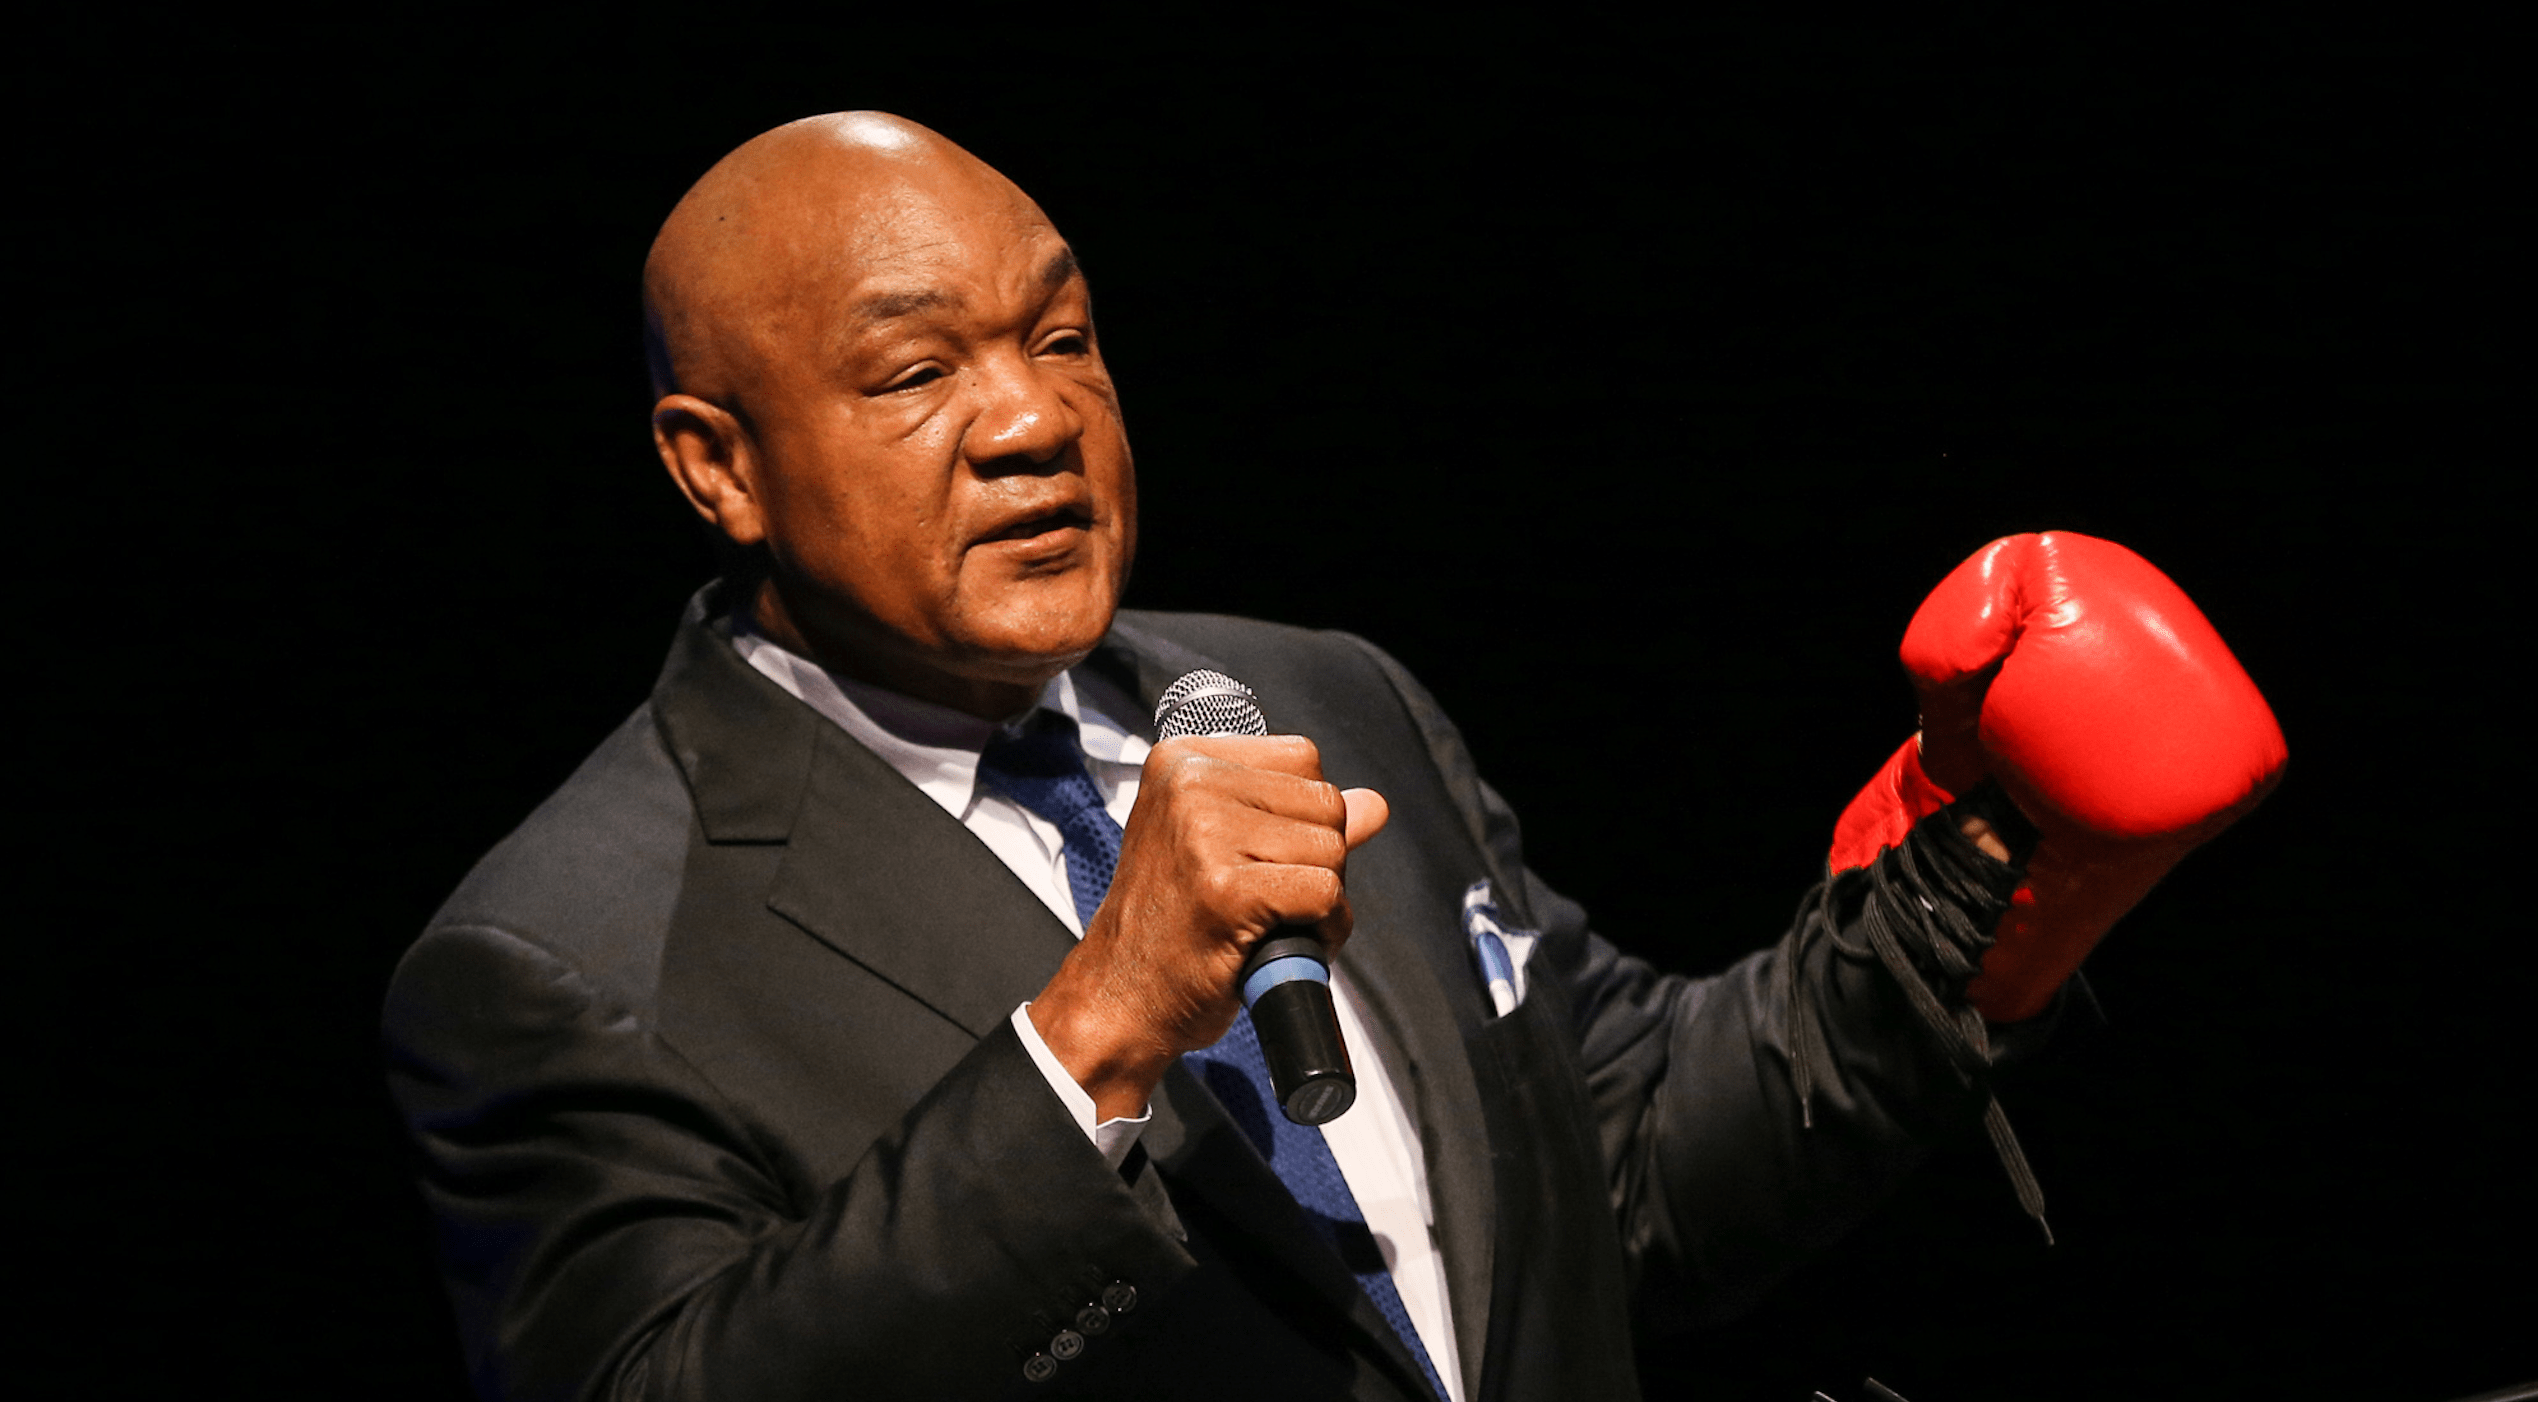 George Foreman Shares His Concerns For Mike Tyson And Roy Jones Jr